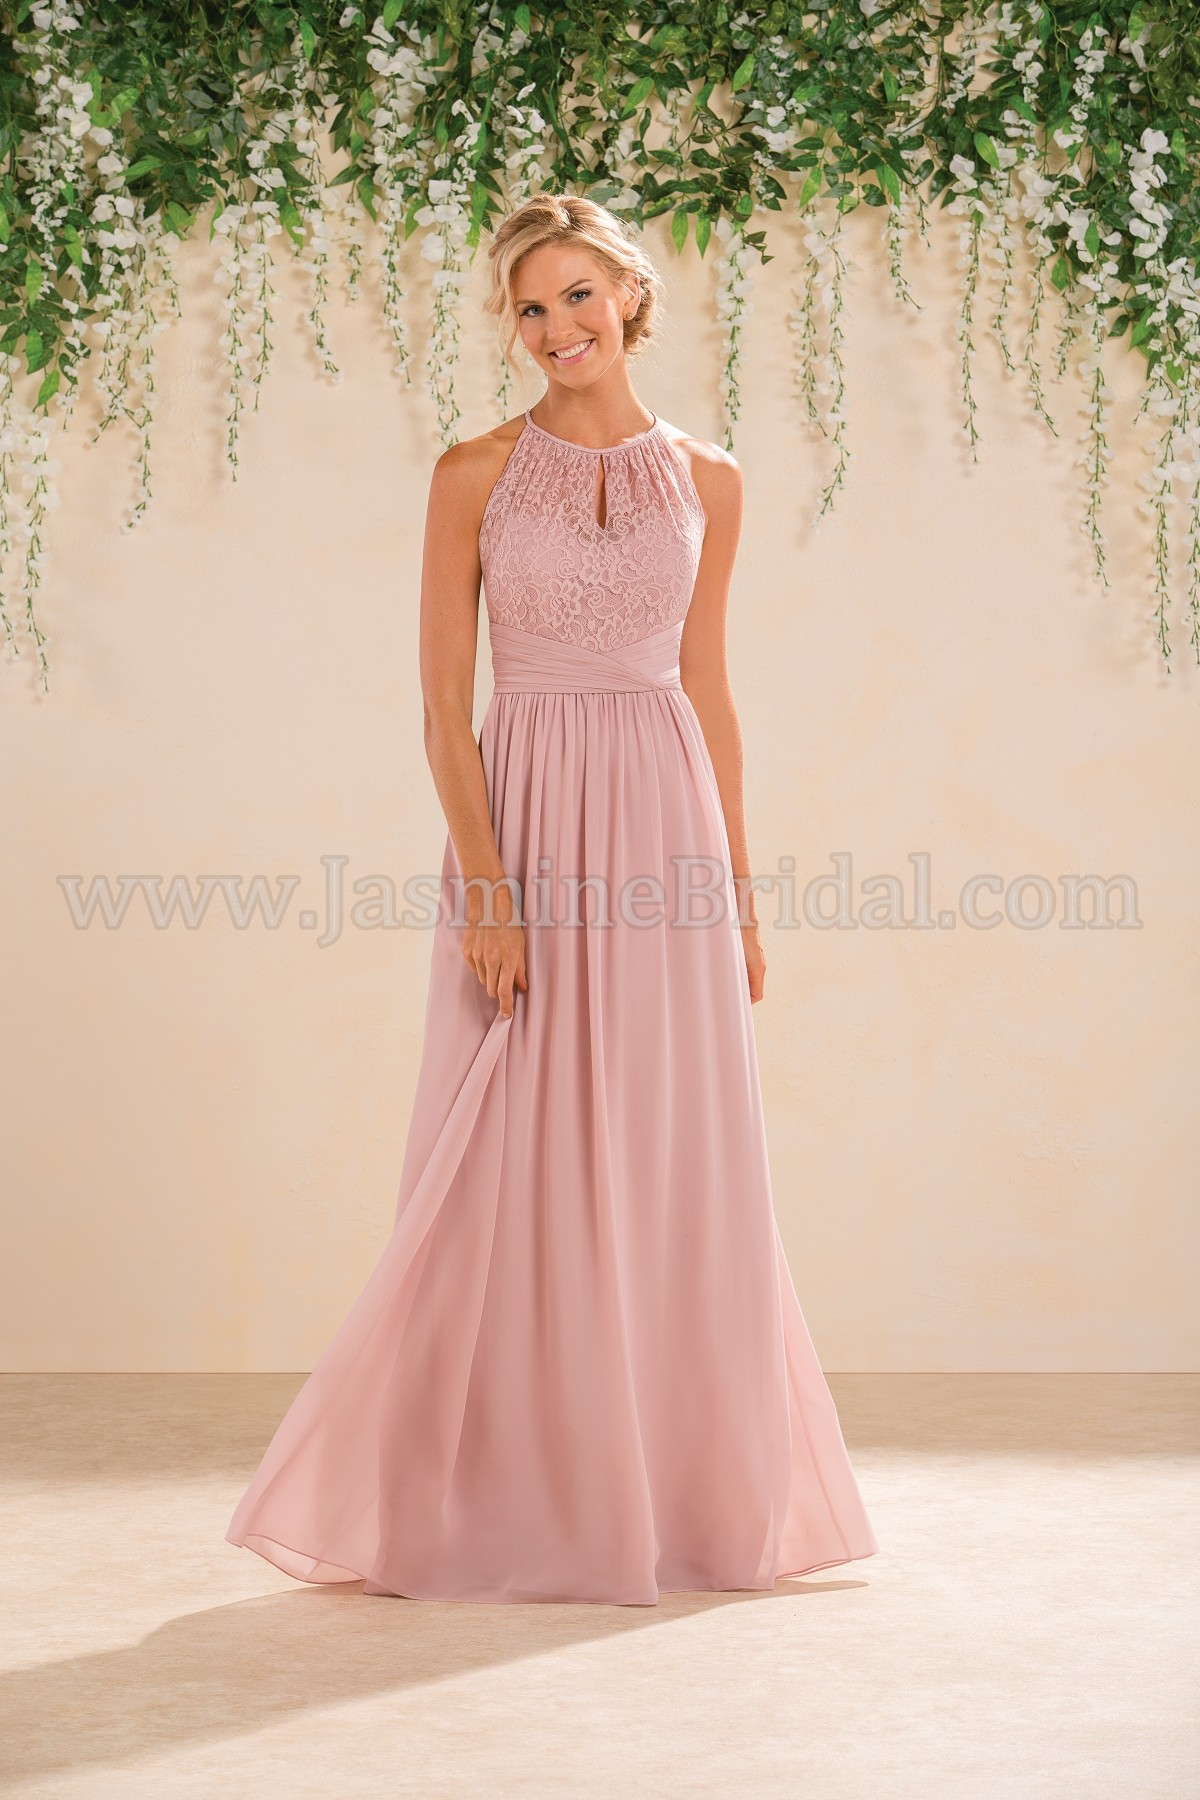 Jasmine bridesmaid dress colors for fall